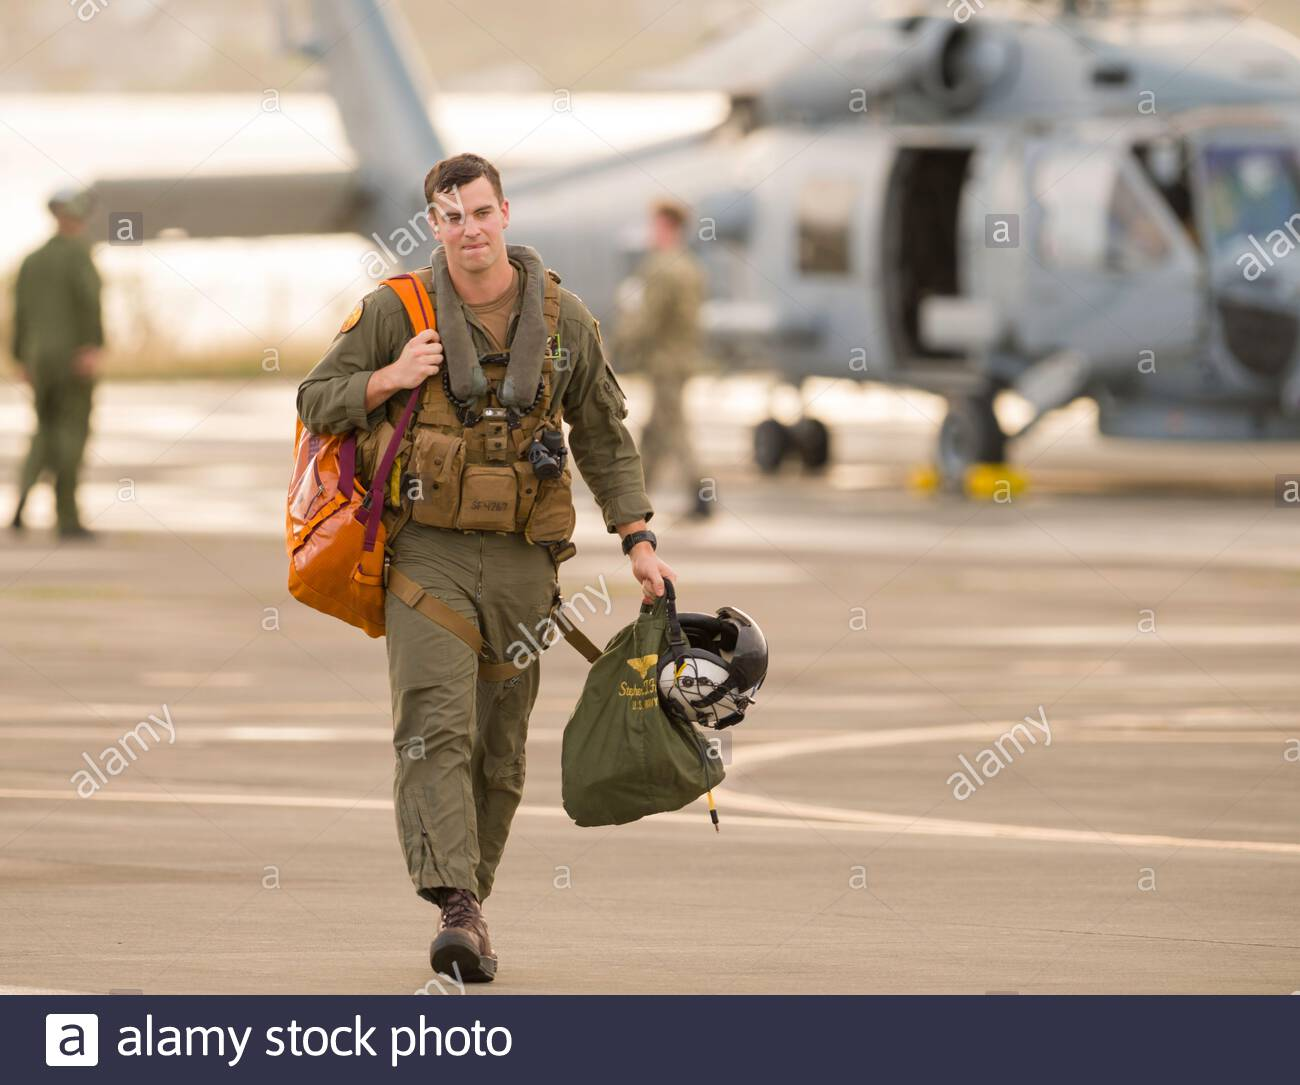 Sikorsky SH-60R Seahawk pilot walking towards hanger after fly in to Marine Corps Base Hawaii, Kaneohe, Honolulu, Oahu, Hawaii, USA Stock Photo